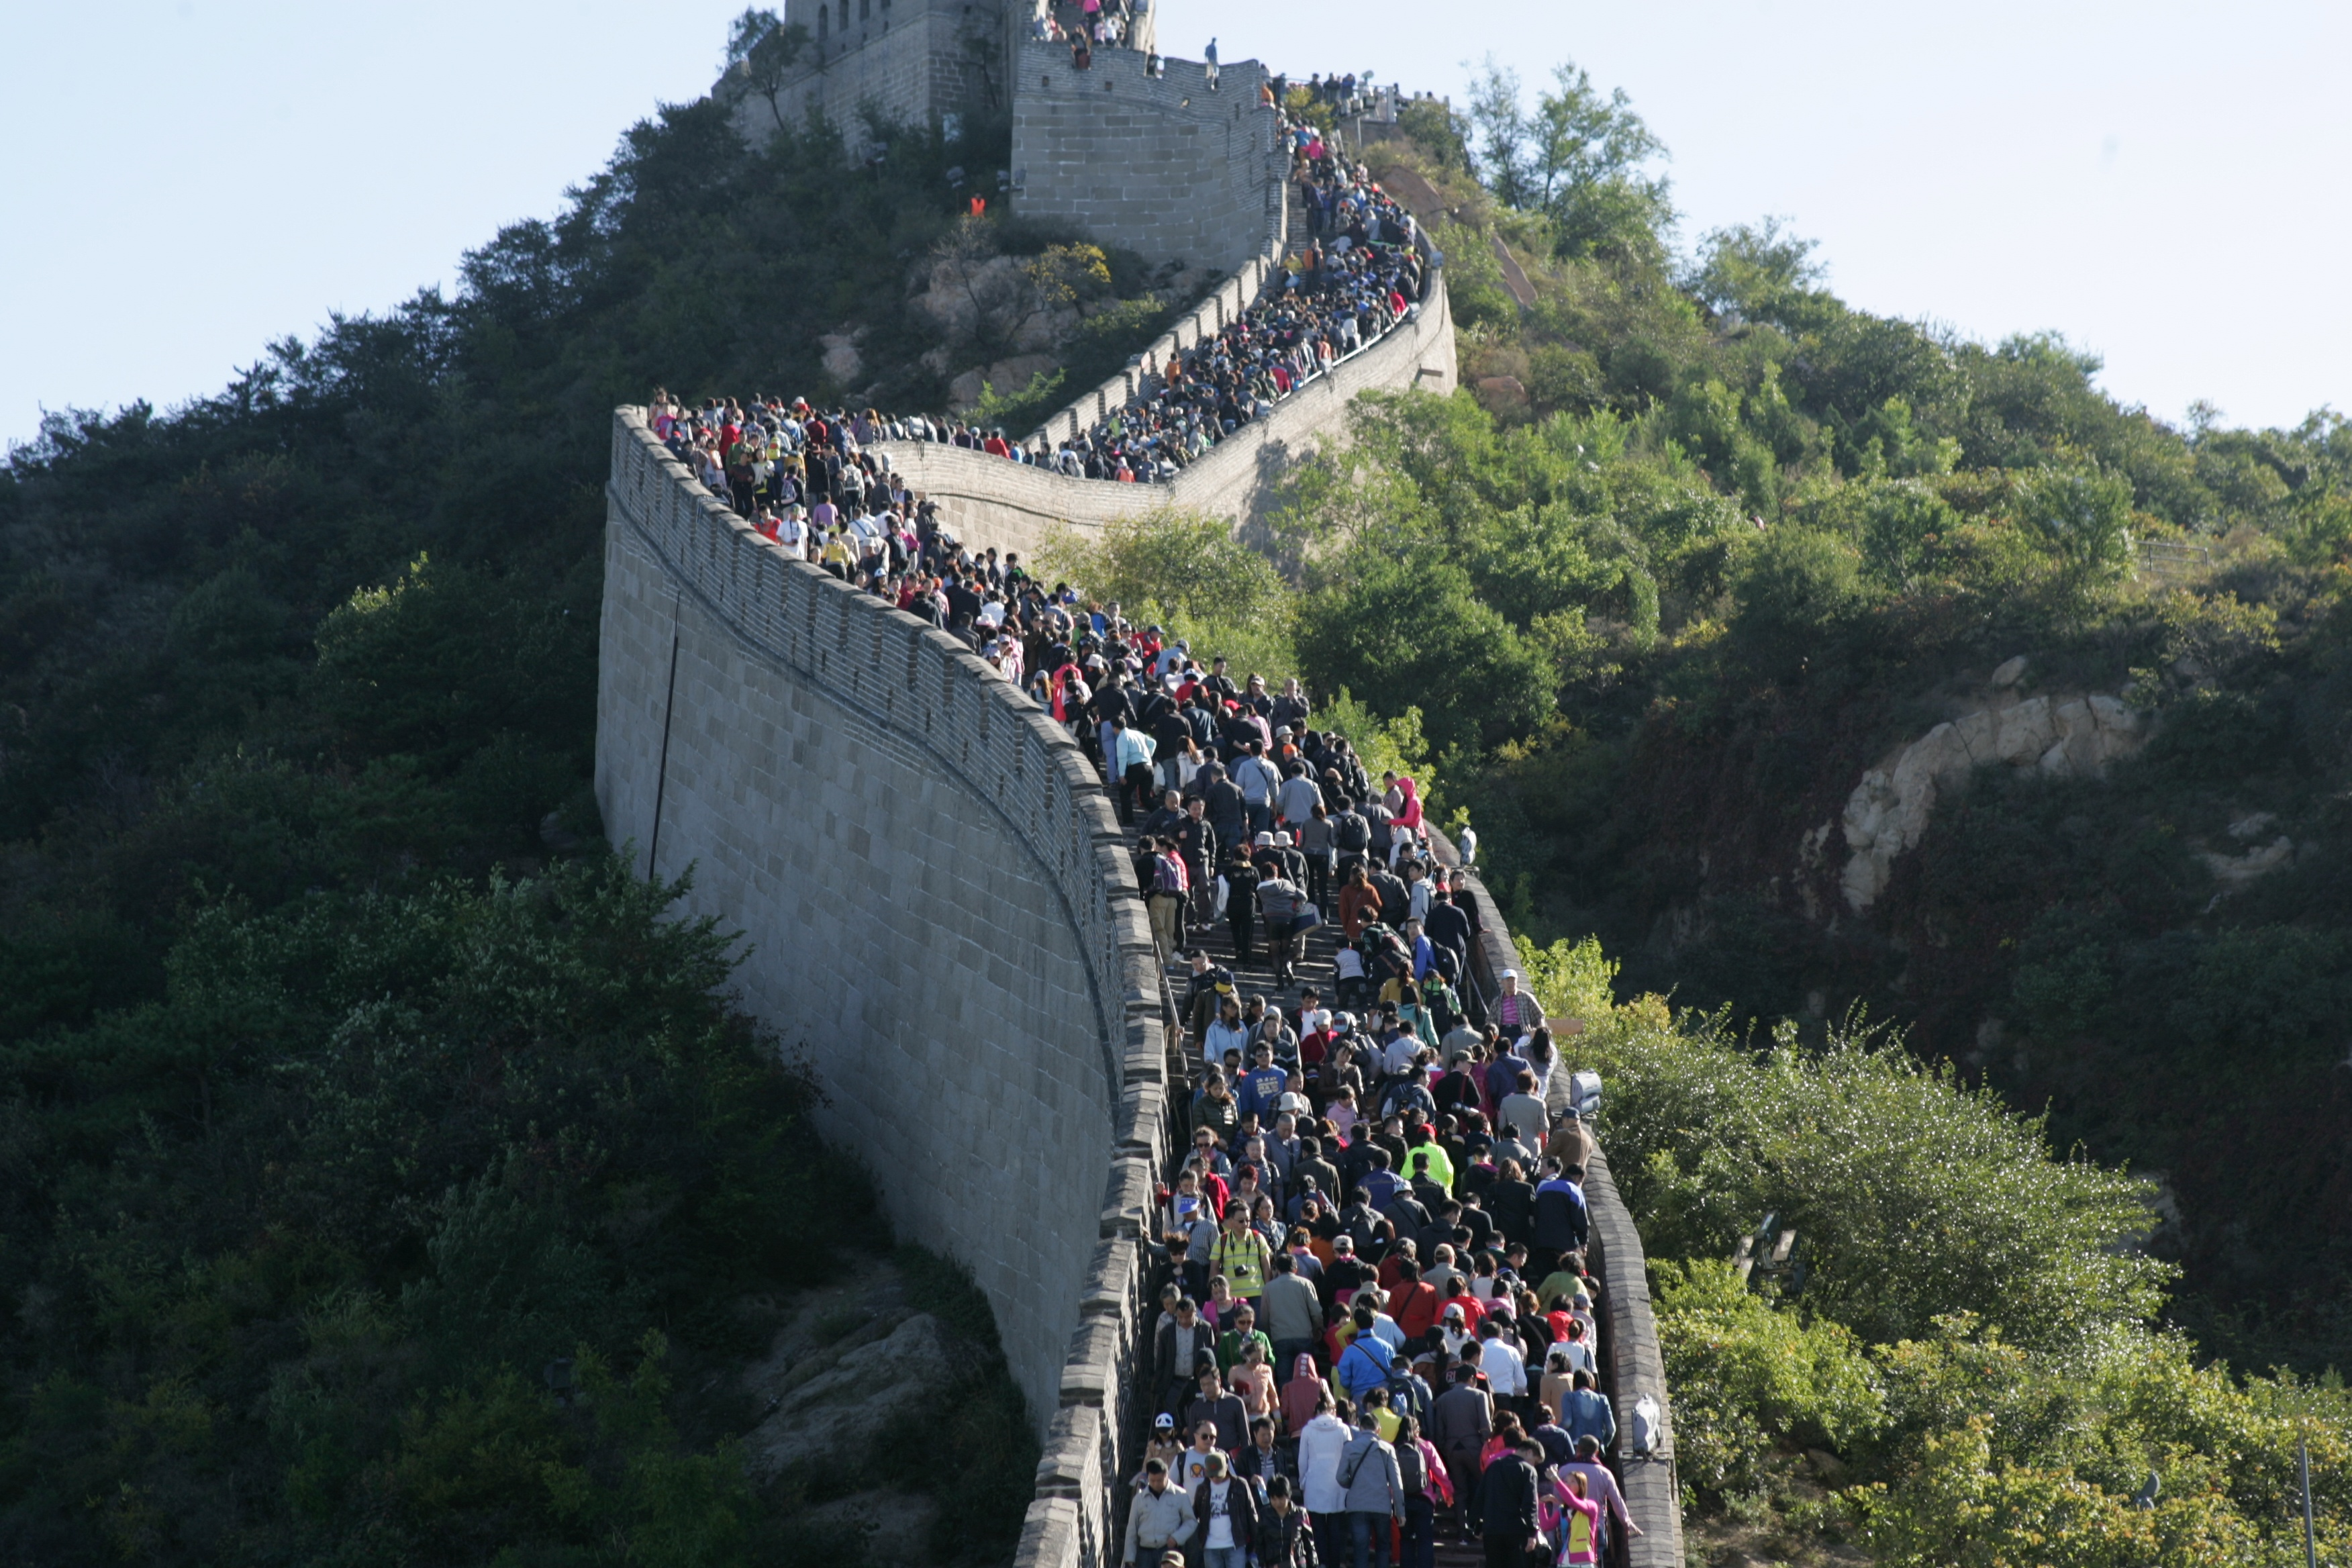 People crowded to visit the Great Wall on October 2, 2013 in Beijing, China.